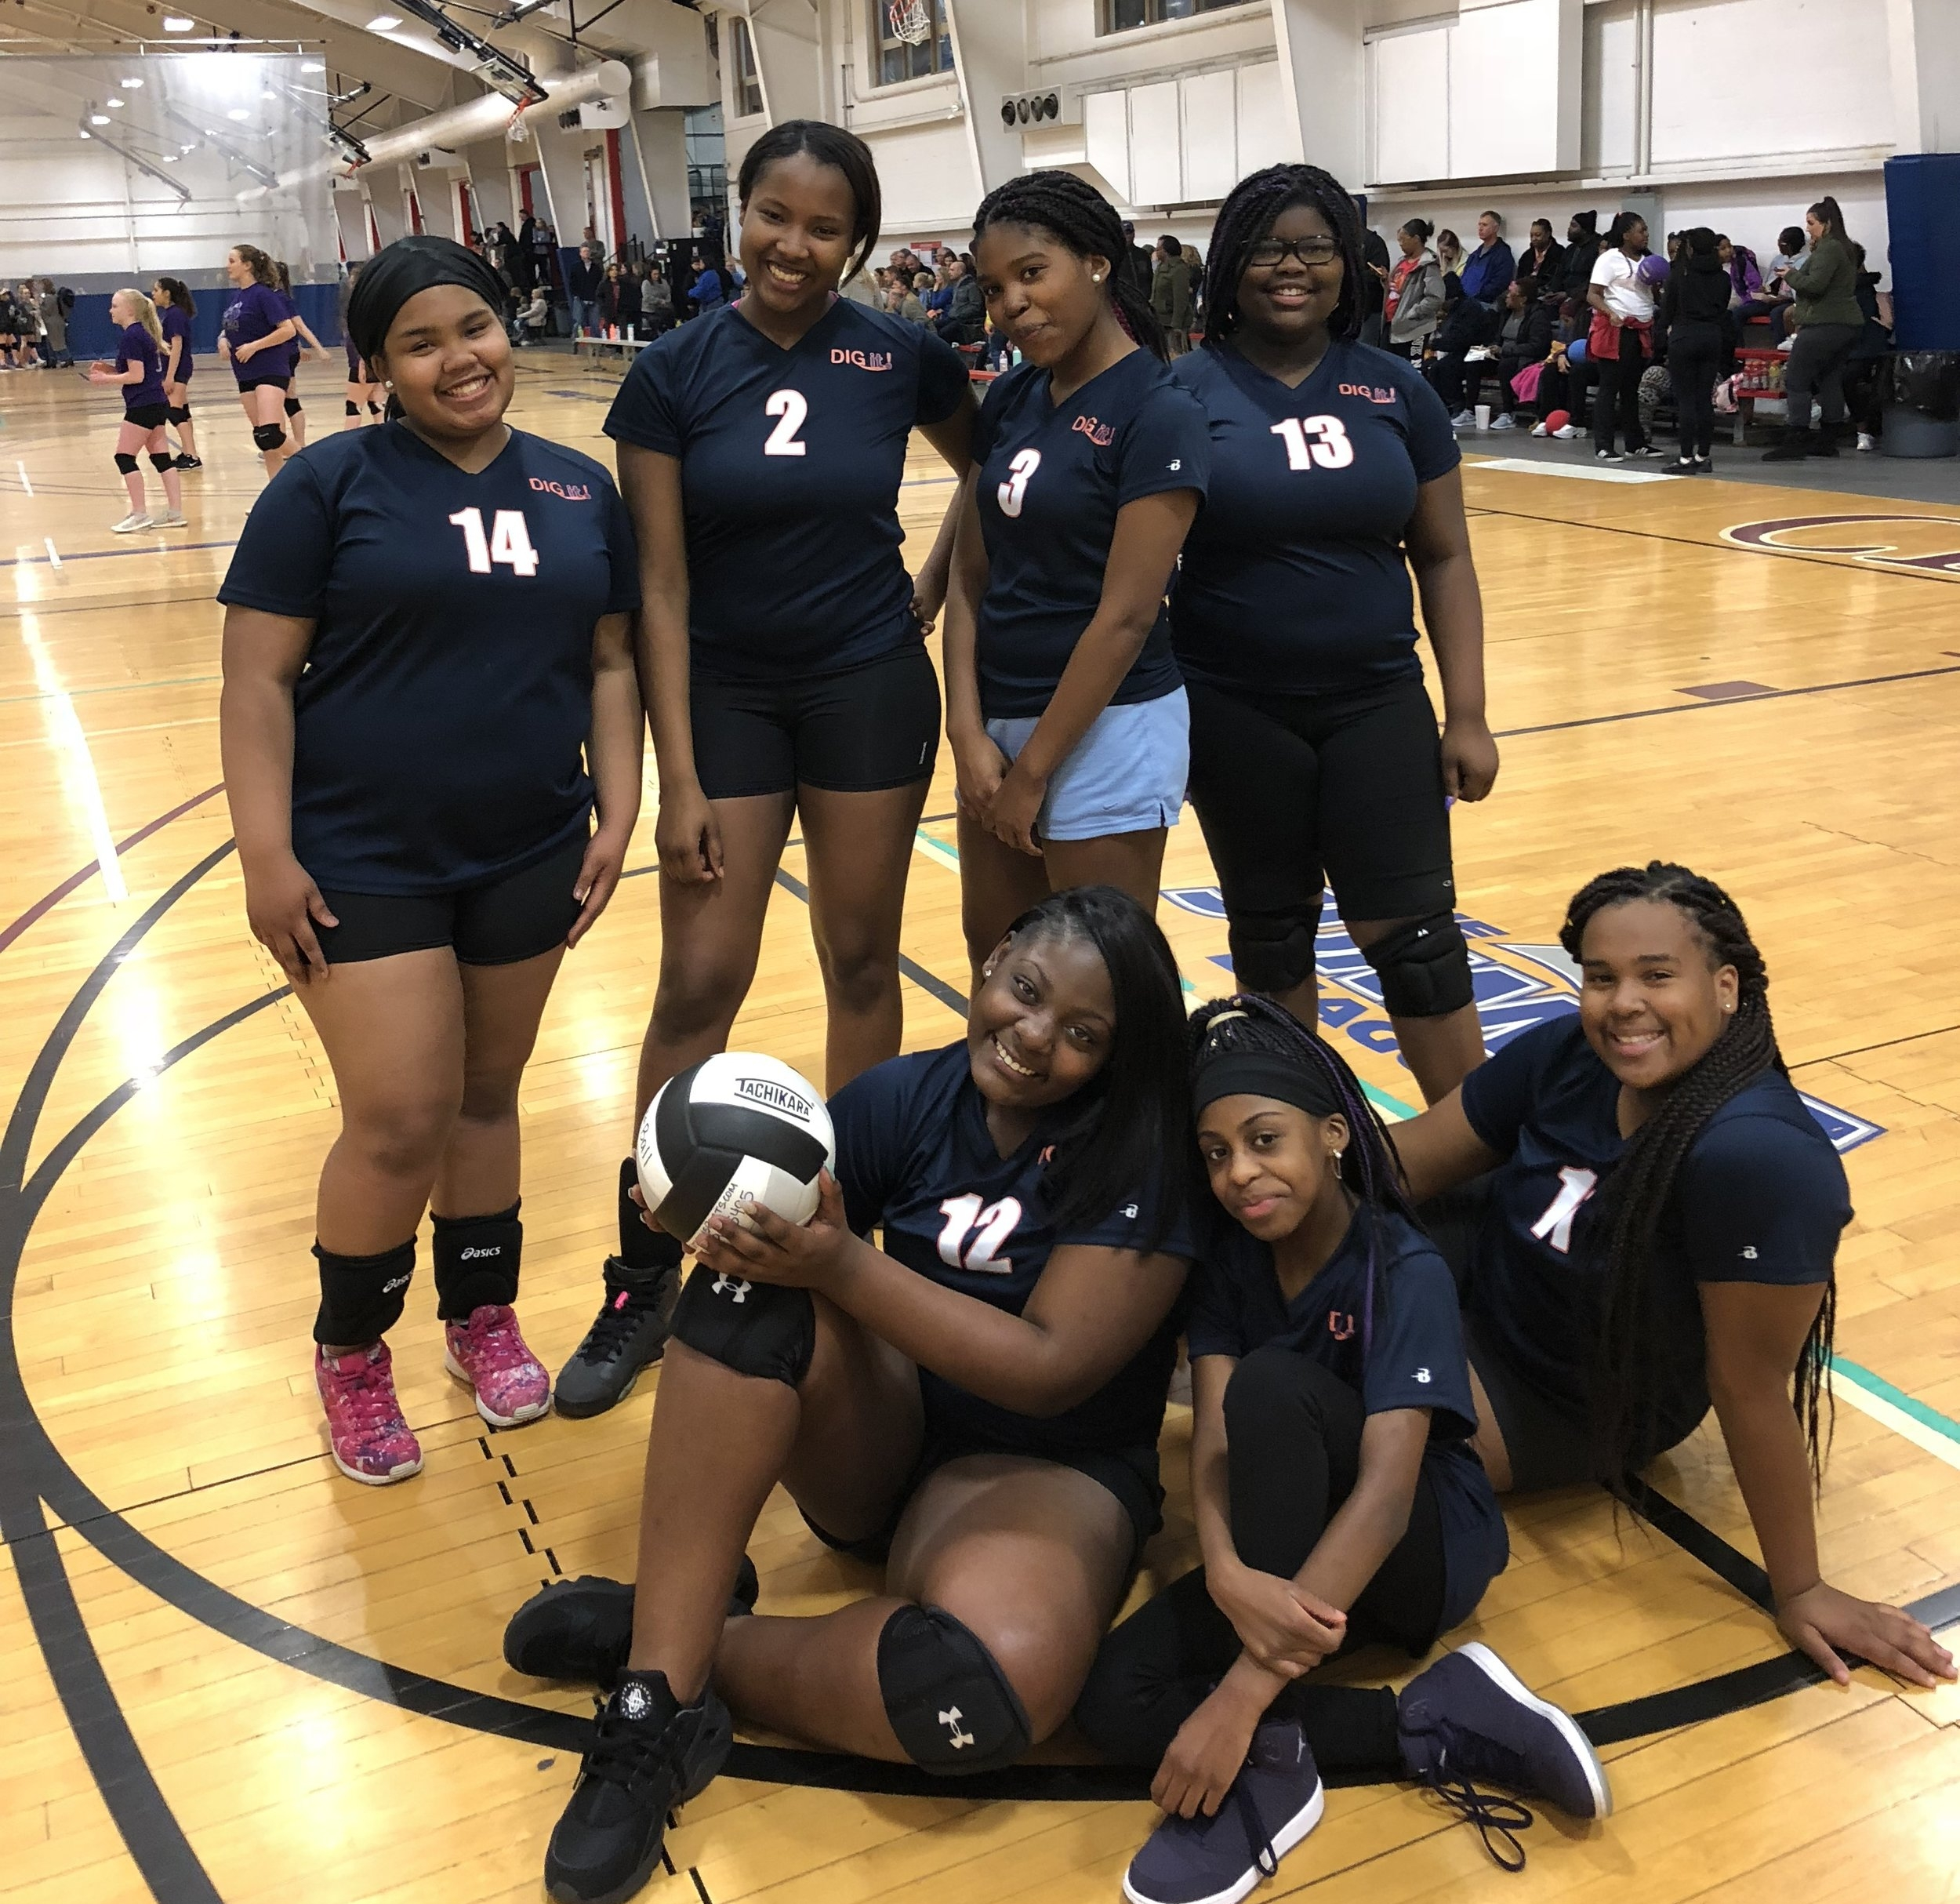 Hazelwood Southeast BGCSTL DIG it! Team - Hazelwood Southeast's Boys & Girls Club DIG it! Volleyball team is located in the Hazelwood, MO school district and consists of 6th-8th grade girls. Southeast has been part of the DIG it! Program for the last 3 years!